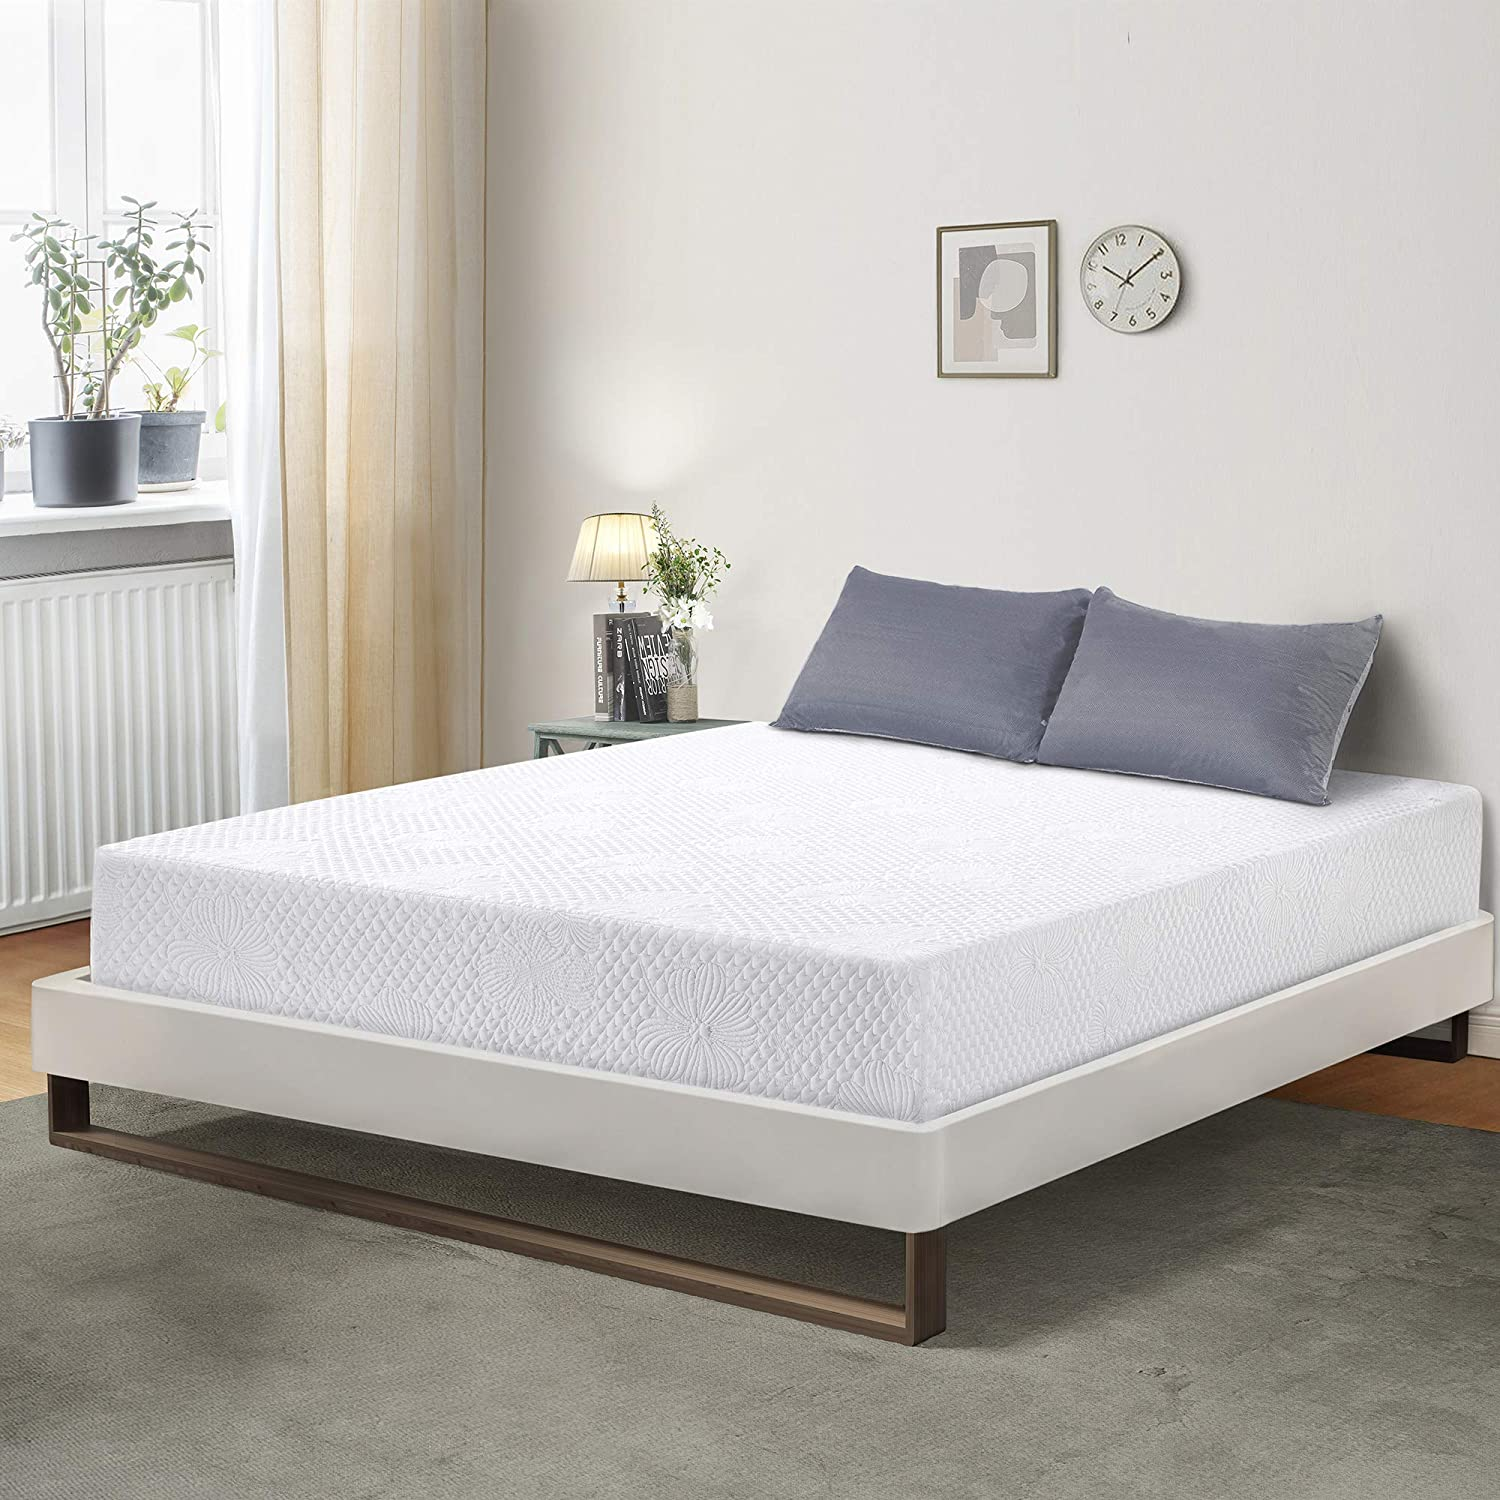 PrimaSleep PR06FM01T Mattress, Twin, White